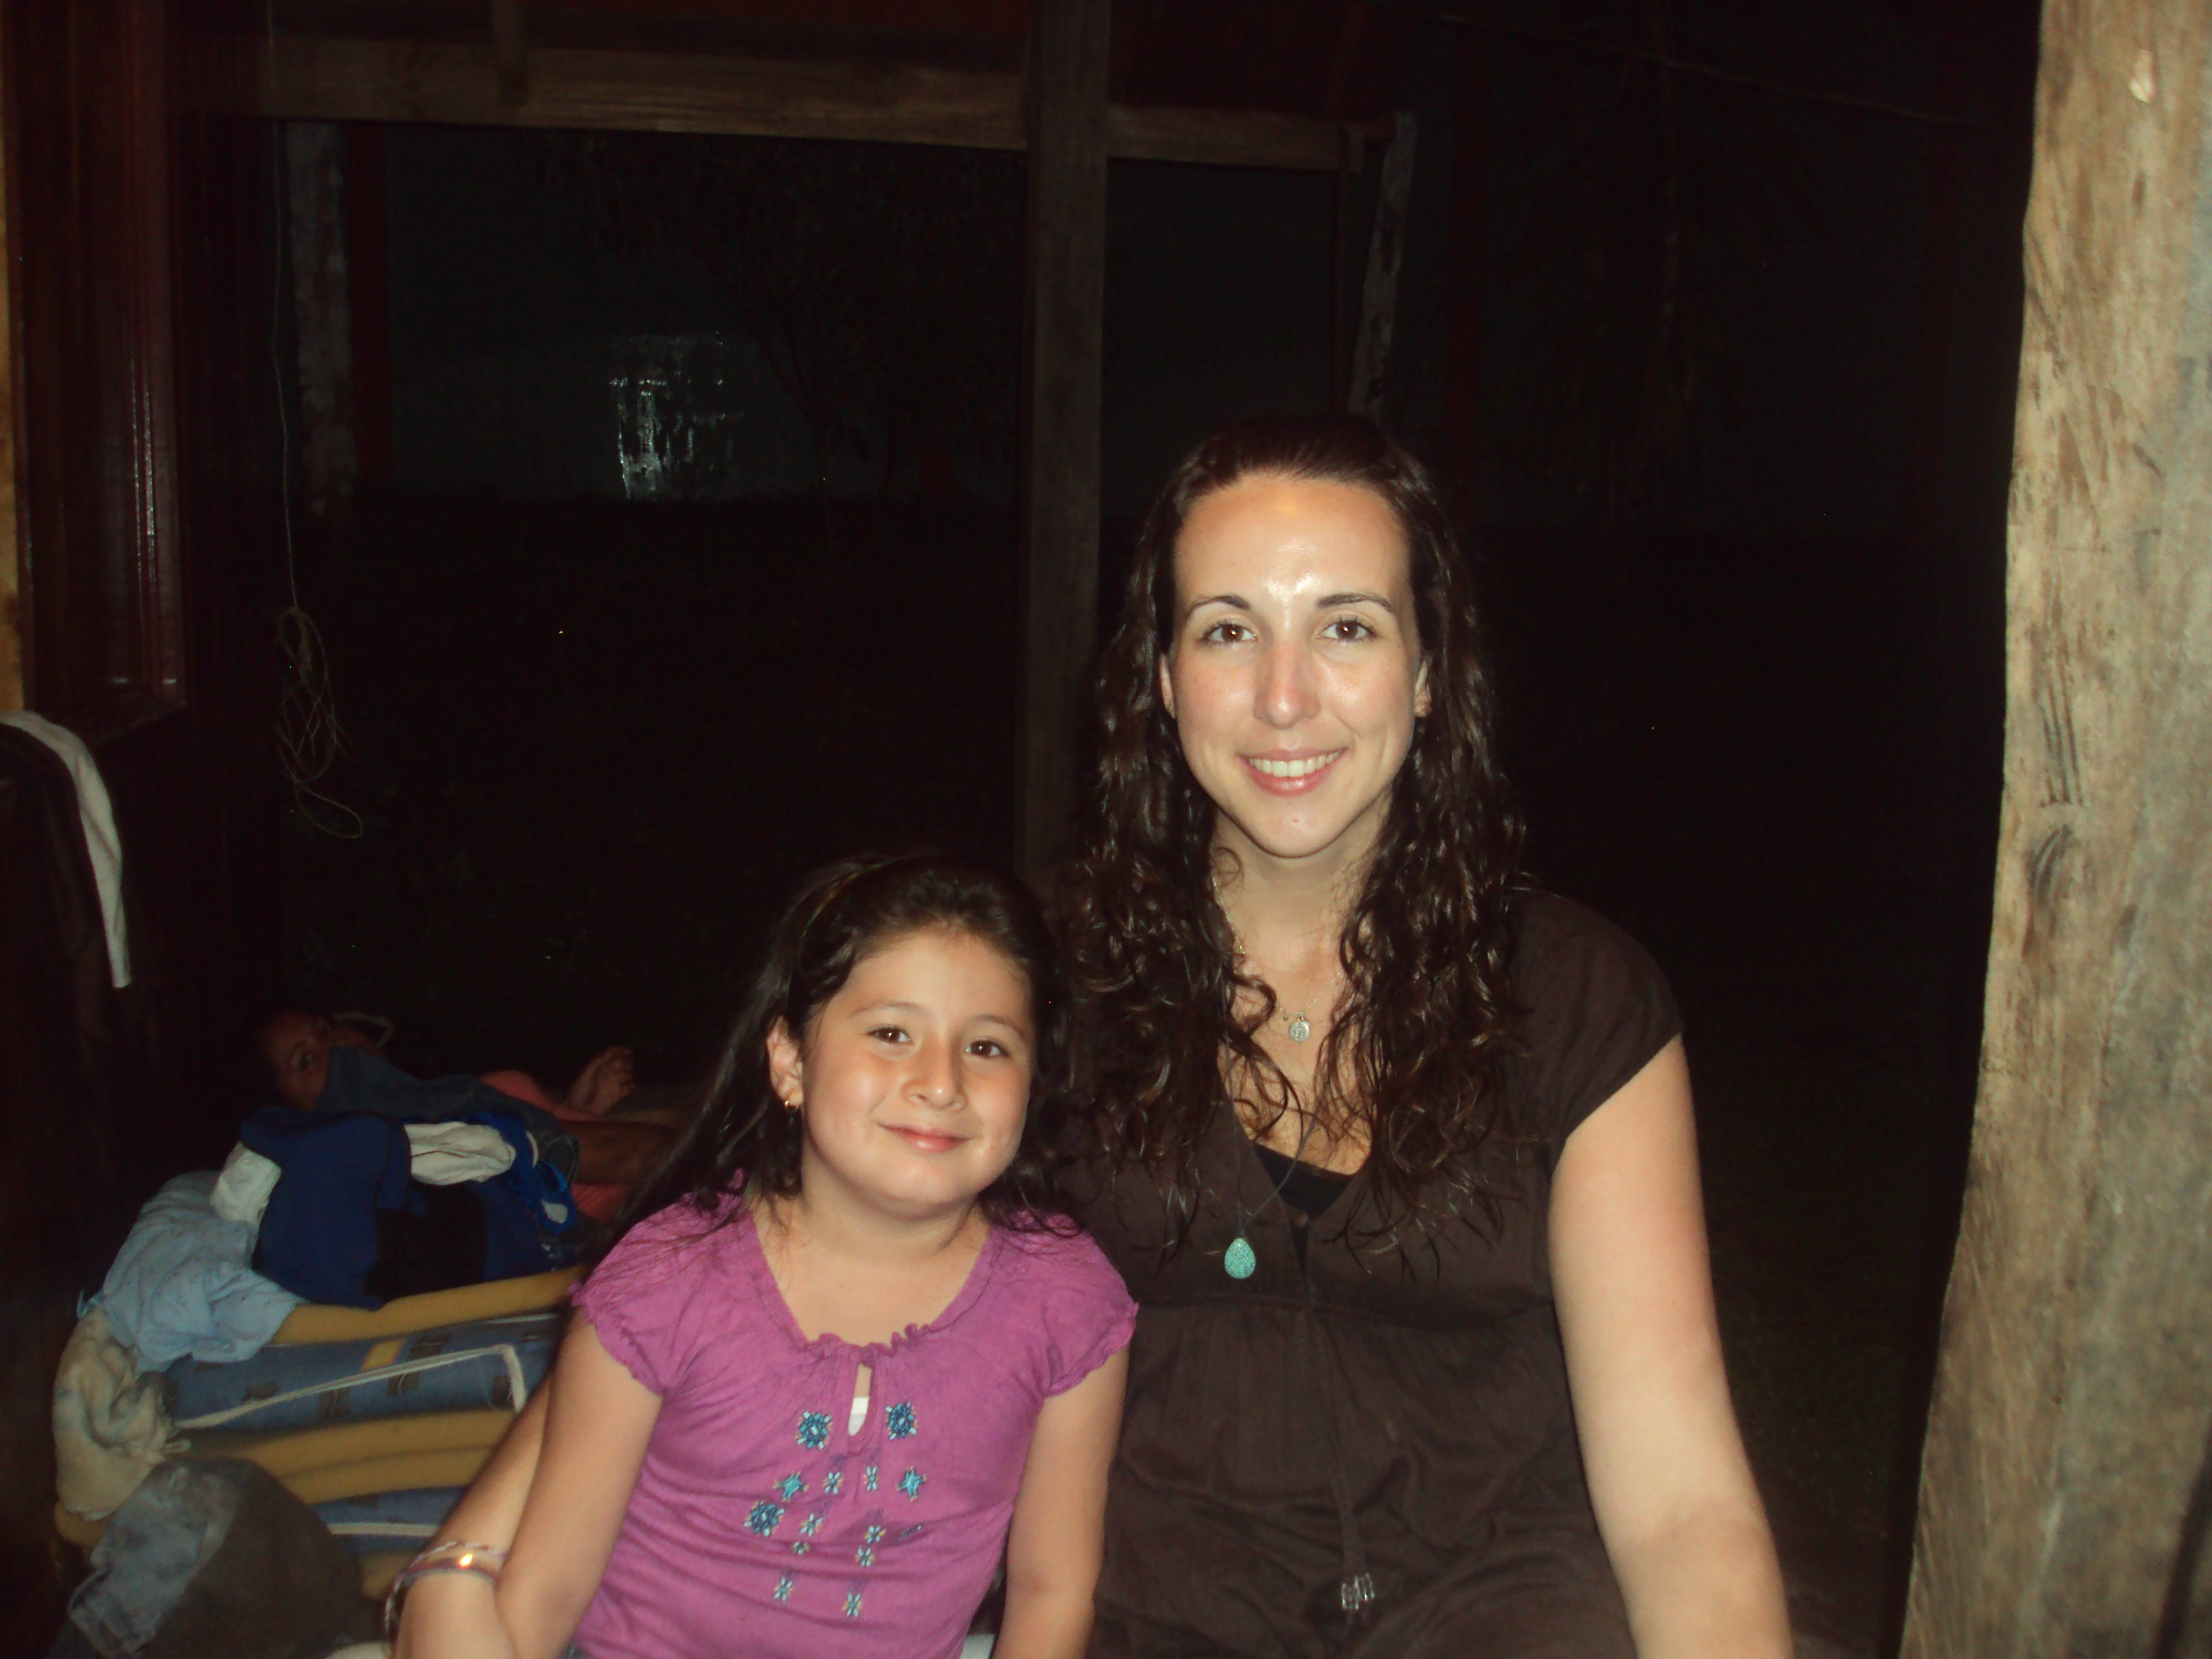 Erin and her host sister, Carolina, on vacation.